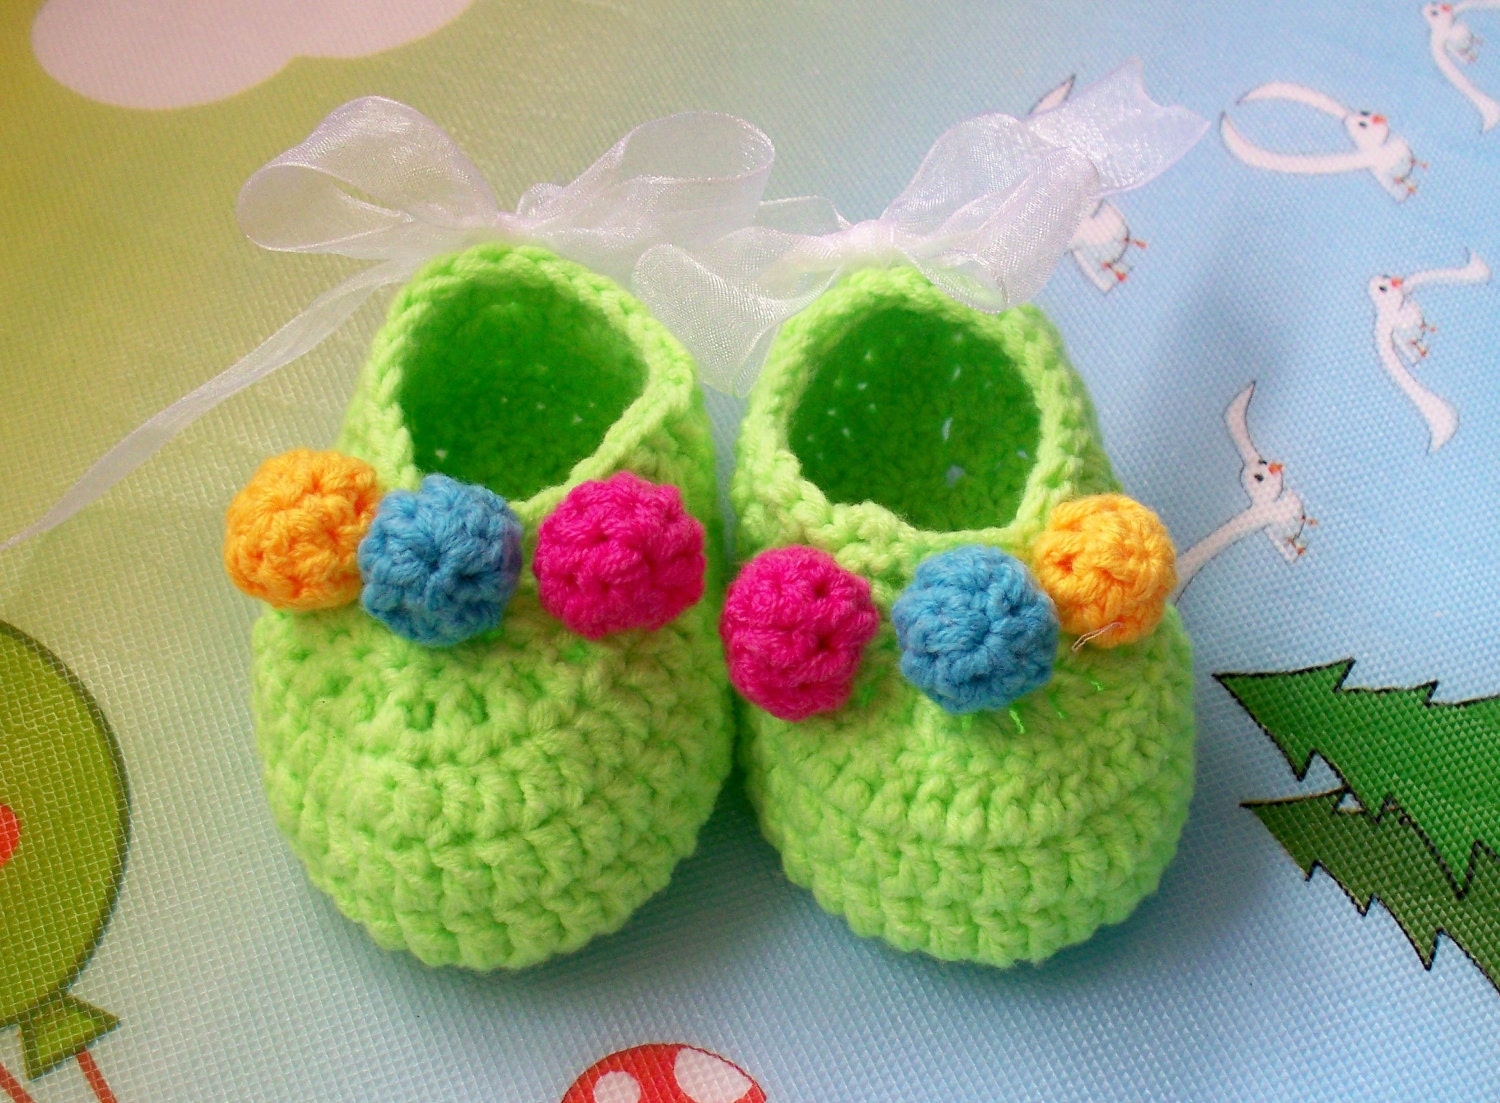 Baby booties with colorful balls